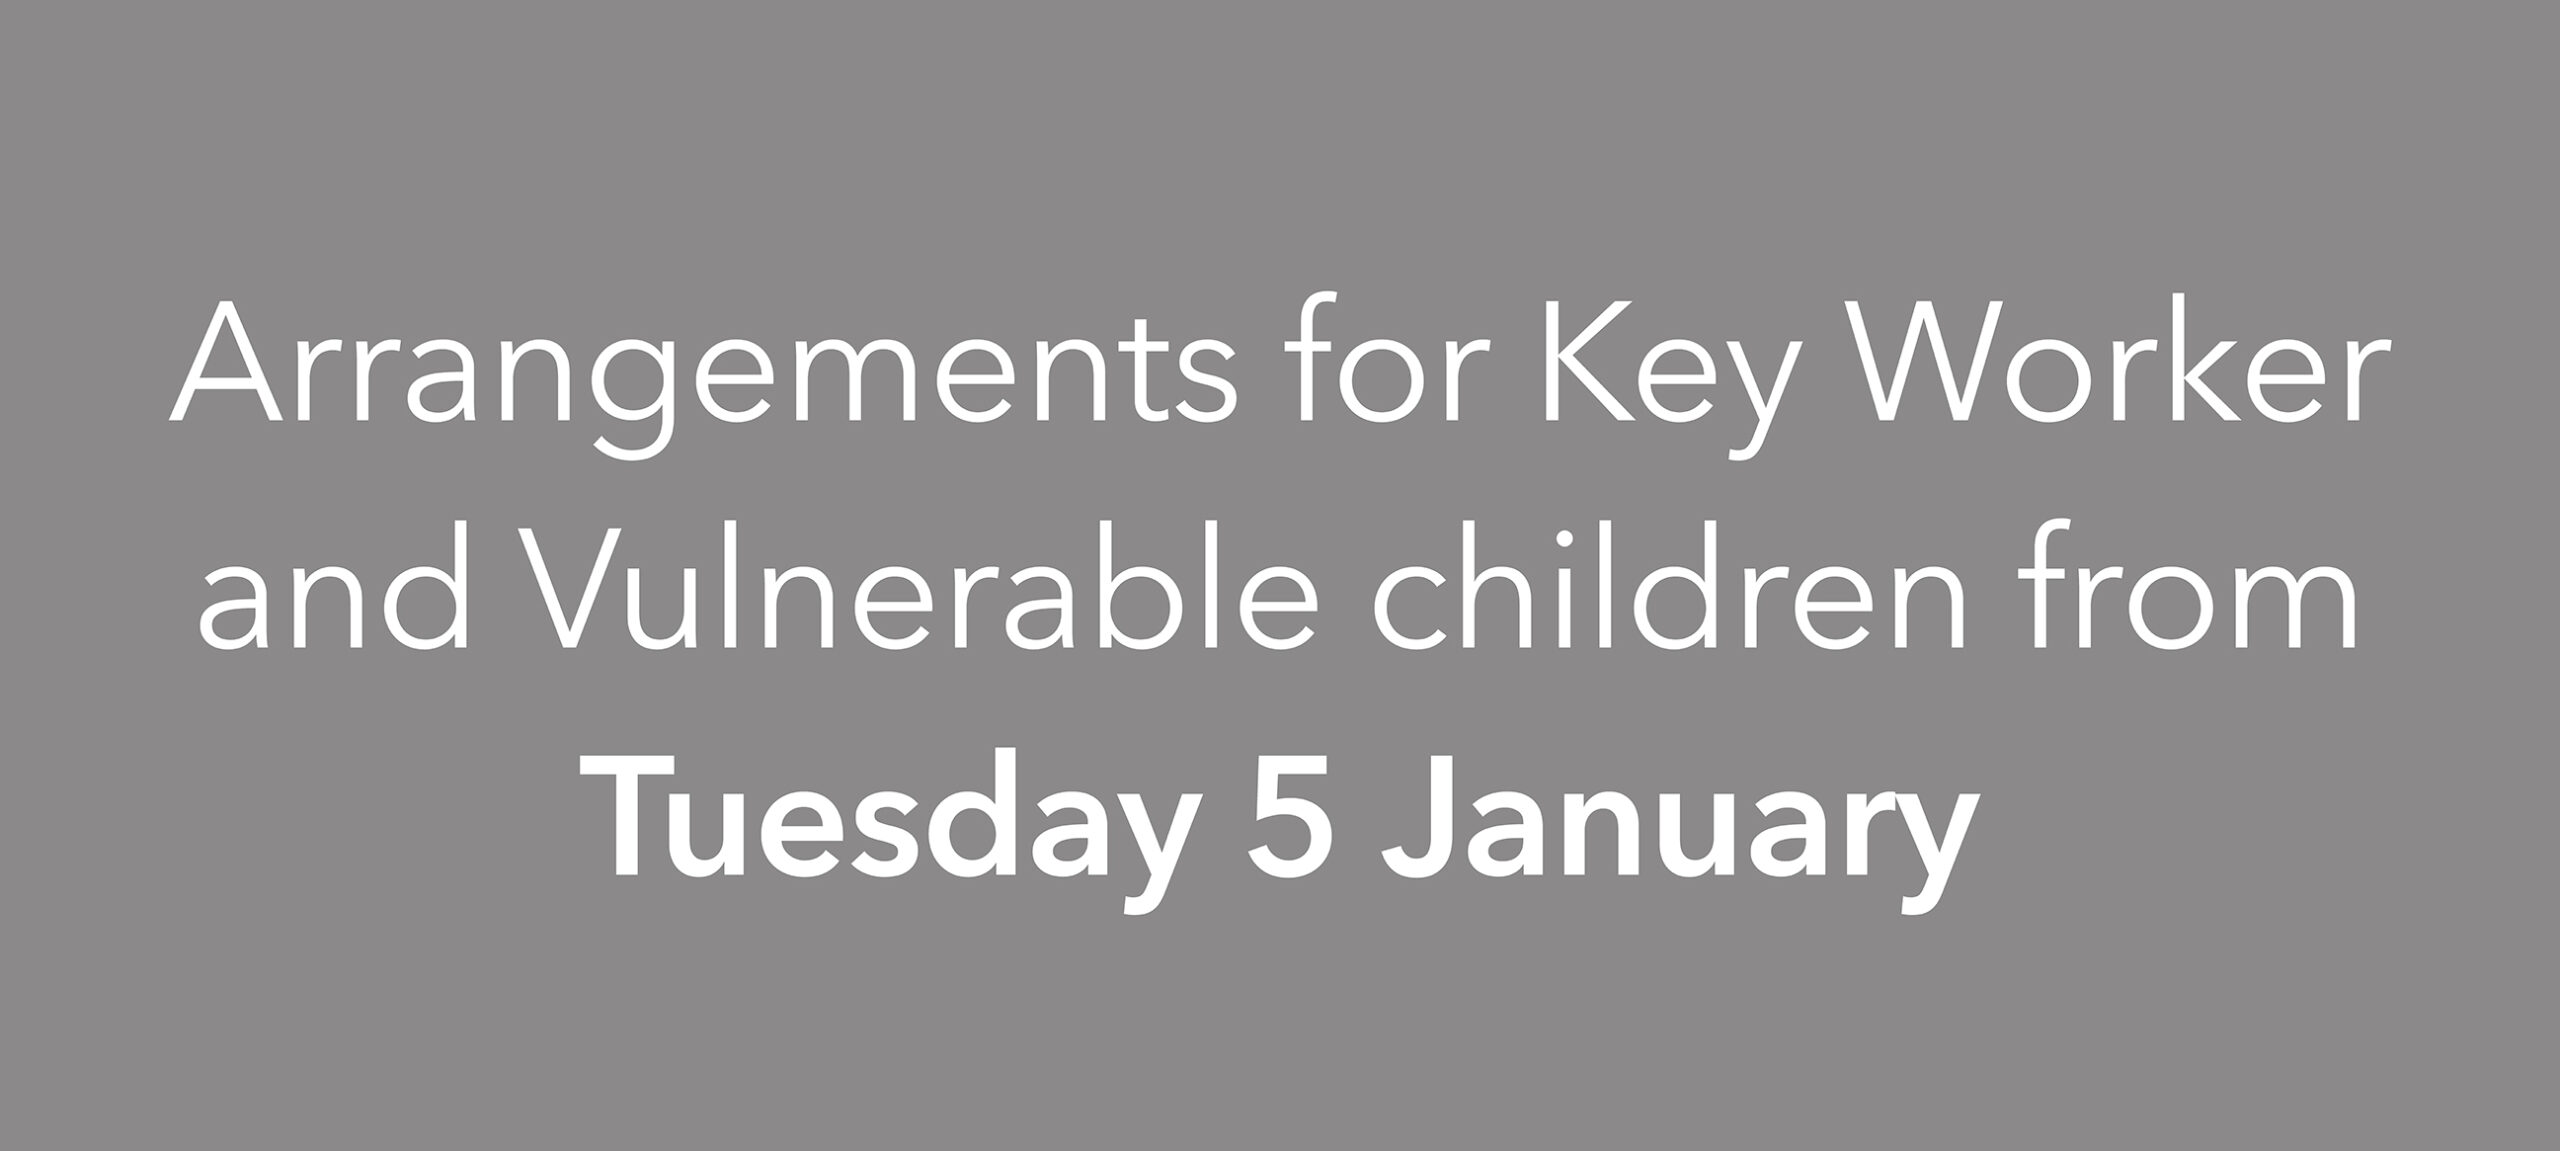 Arrangements for Key Worker and Vulnerable children from Tuesday 5 January